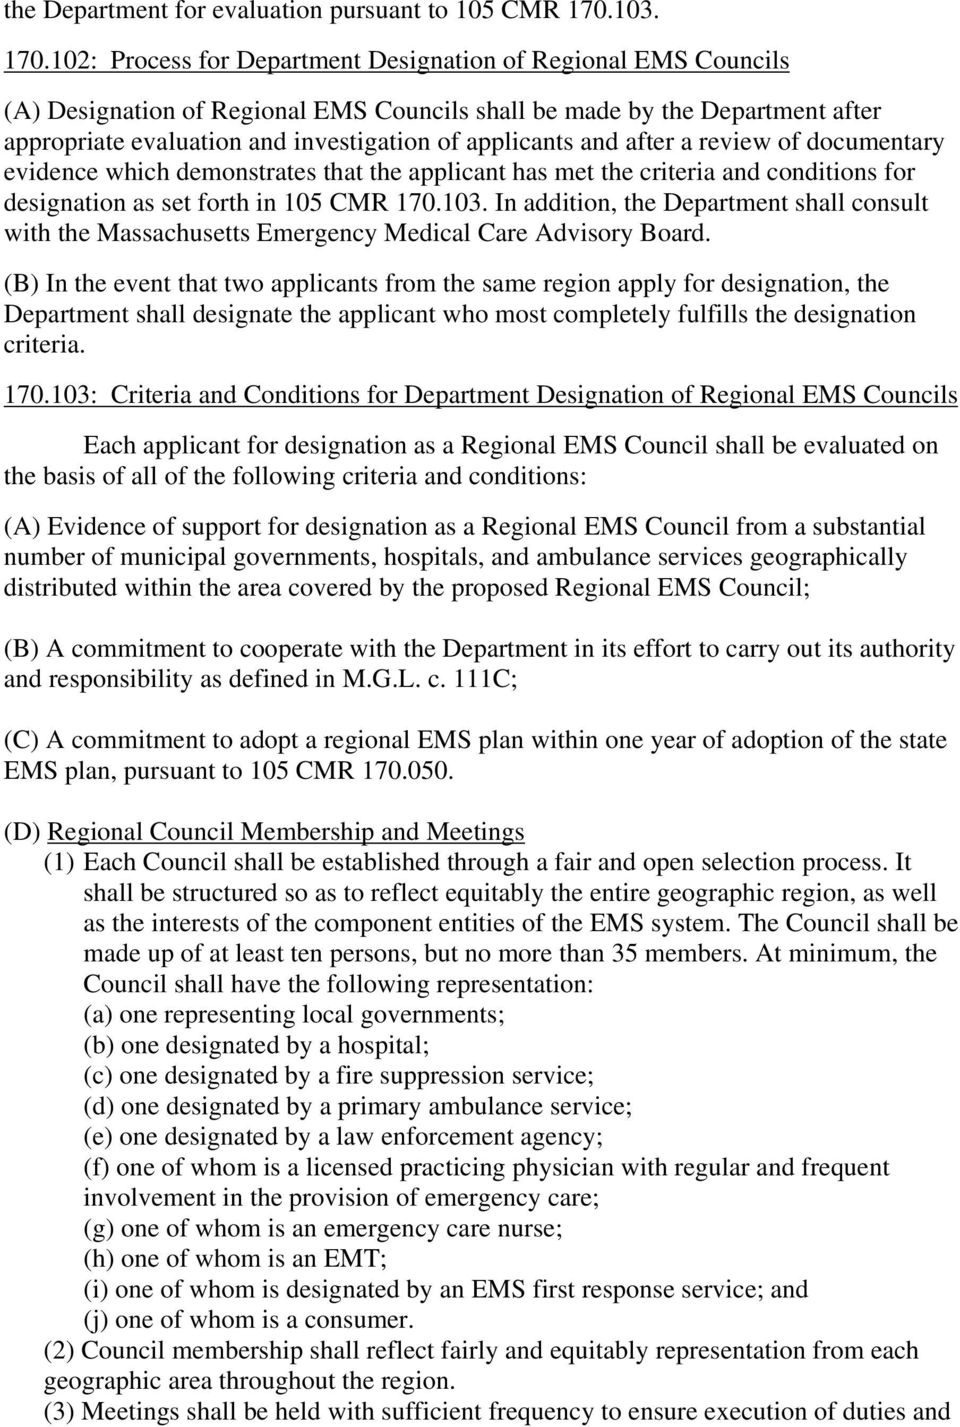 102: Process for Department Designation of Regional EMS Councils (A) Designation of Regional EMS Councils shall be made by the Department after appropriate evaluation and investigation of applicants